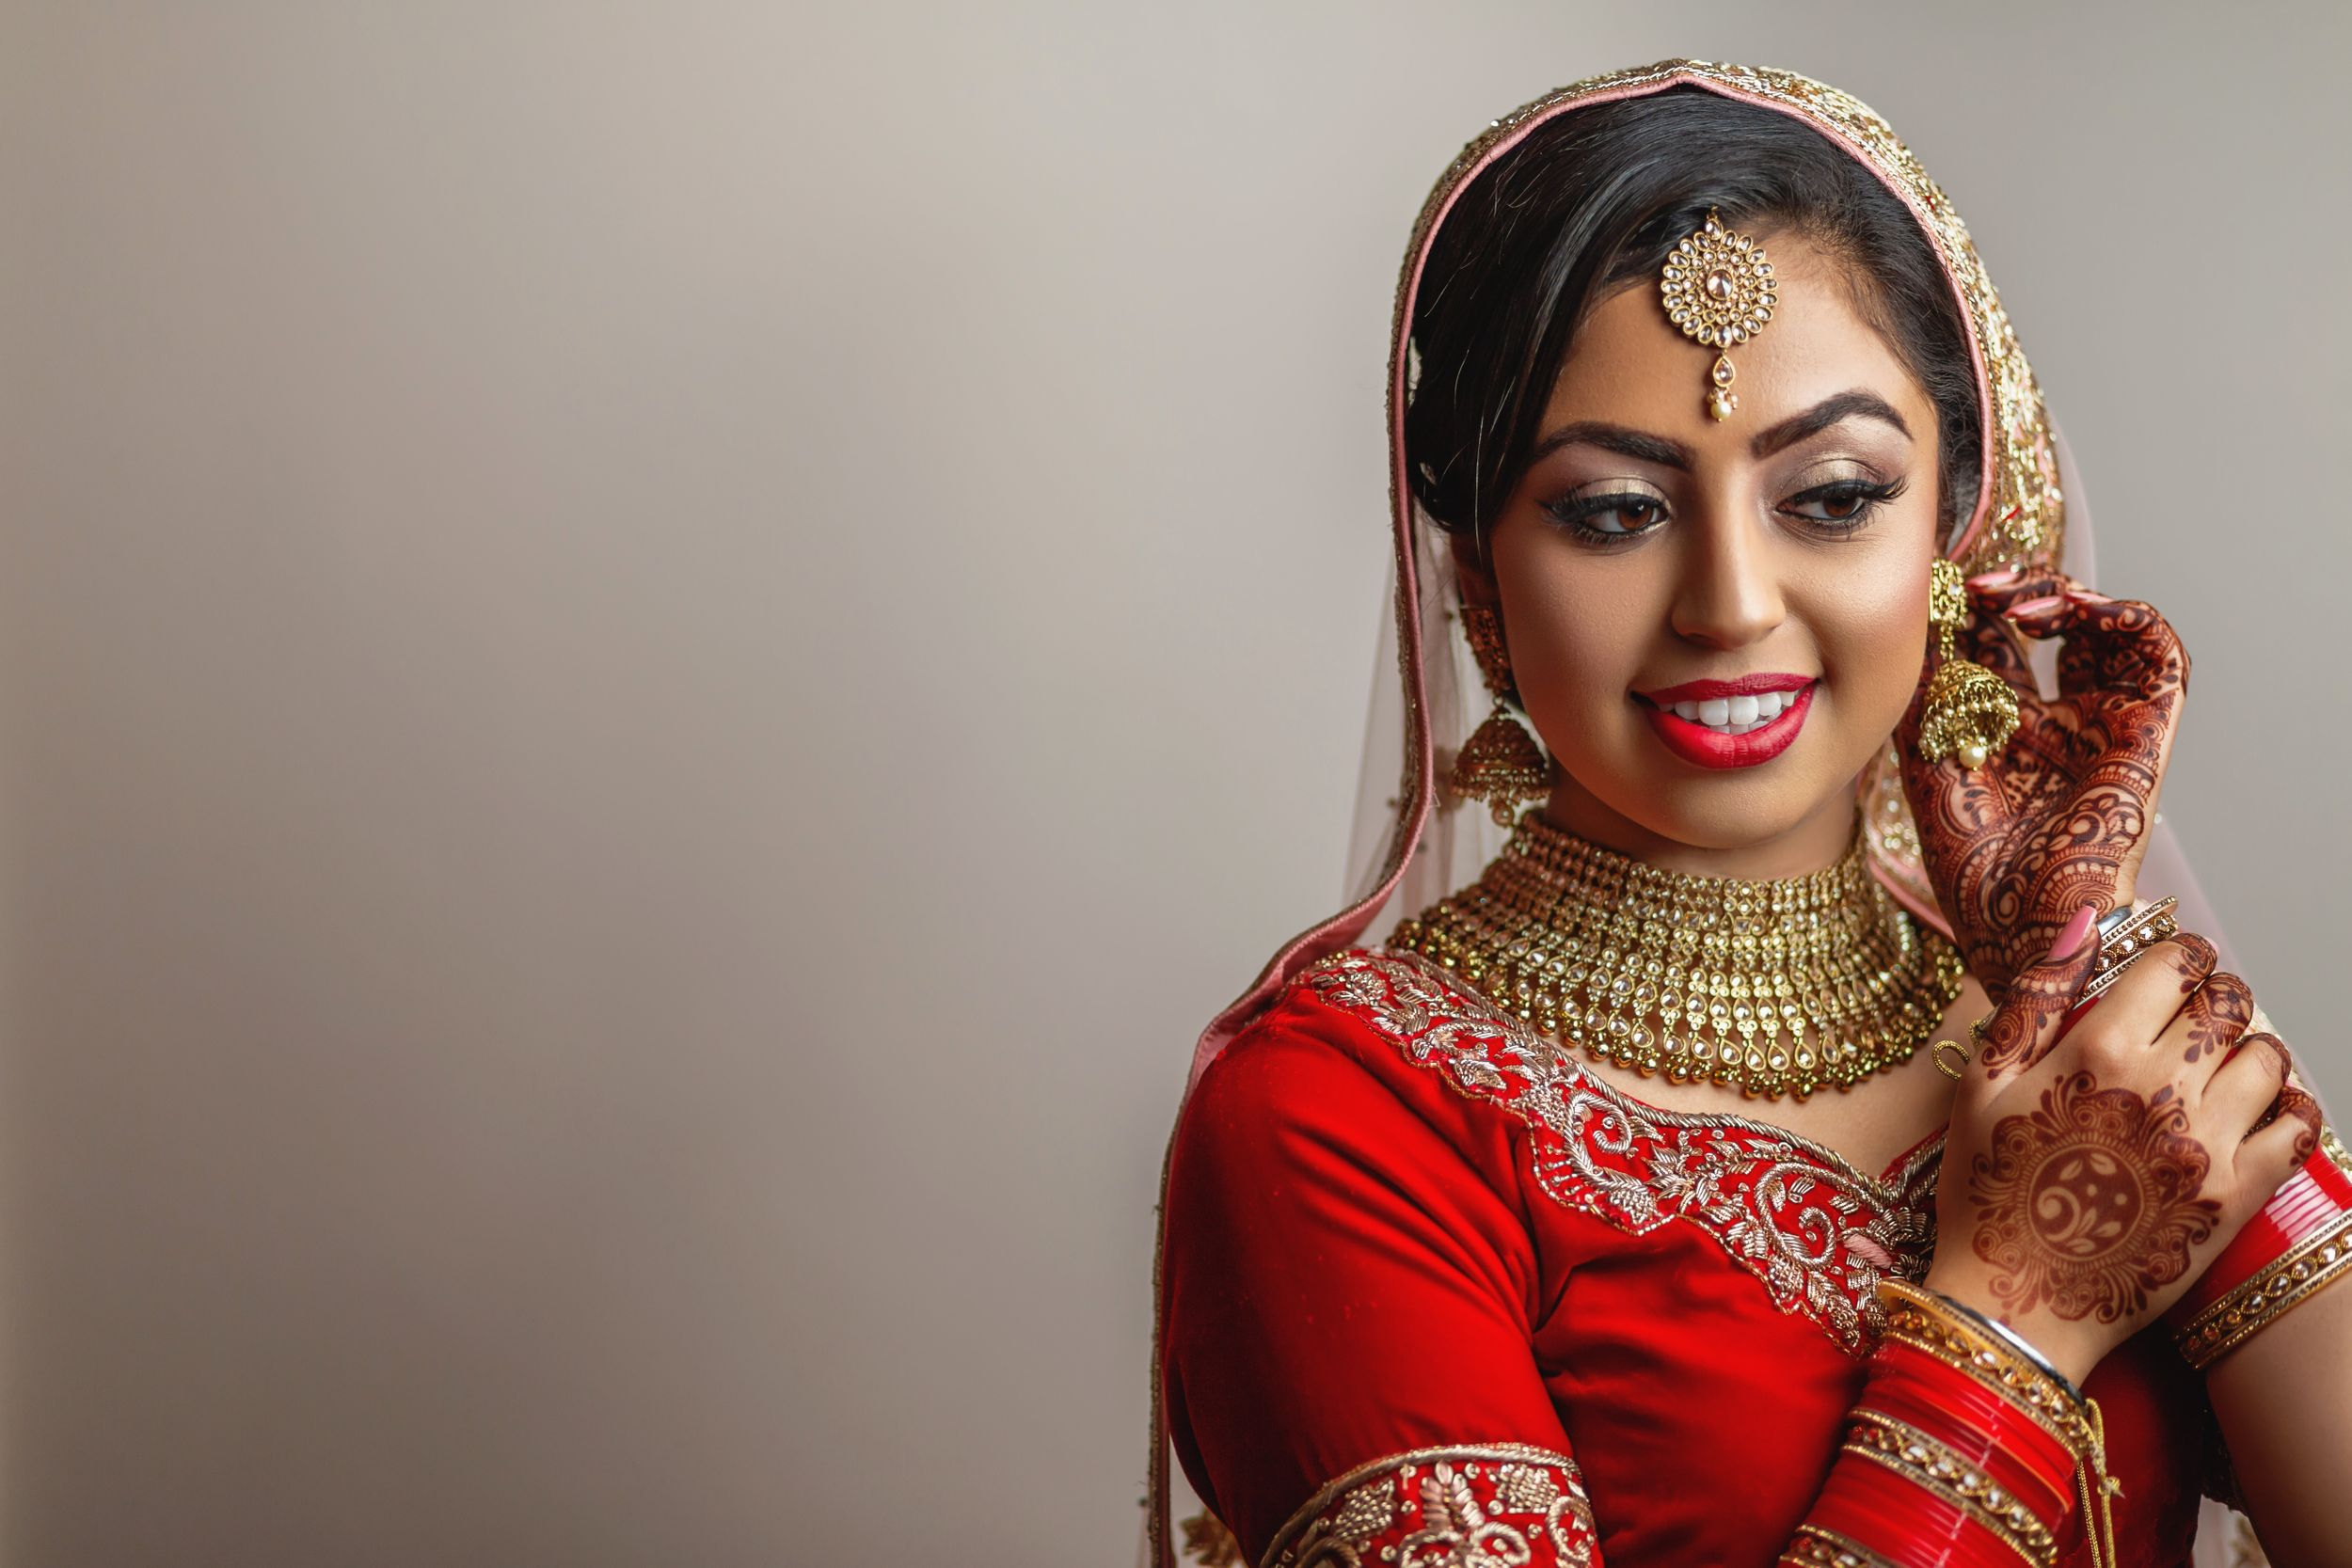 Alrewas Hayes Asian wedding photos. Birmingham Indian wedding photography. Indian bride and groom wedding portrait photo